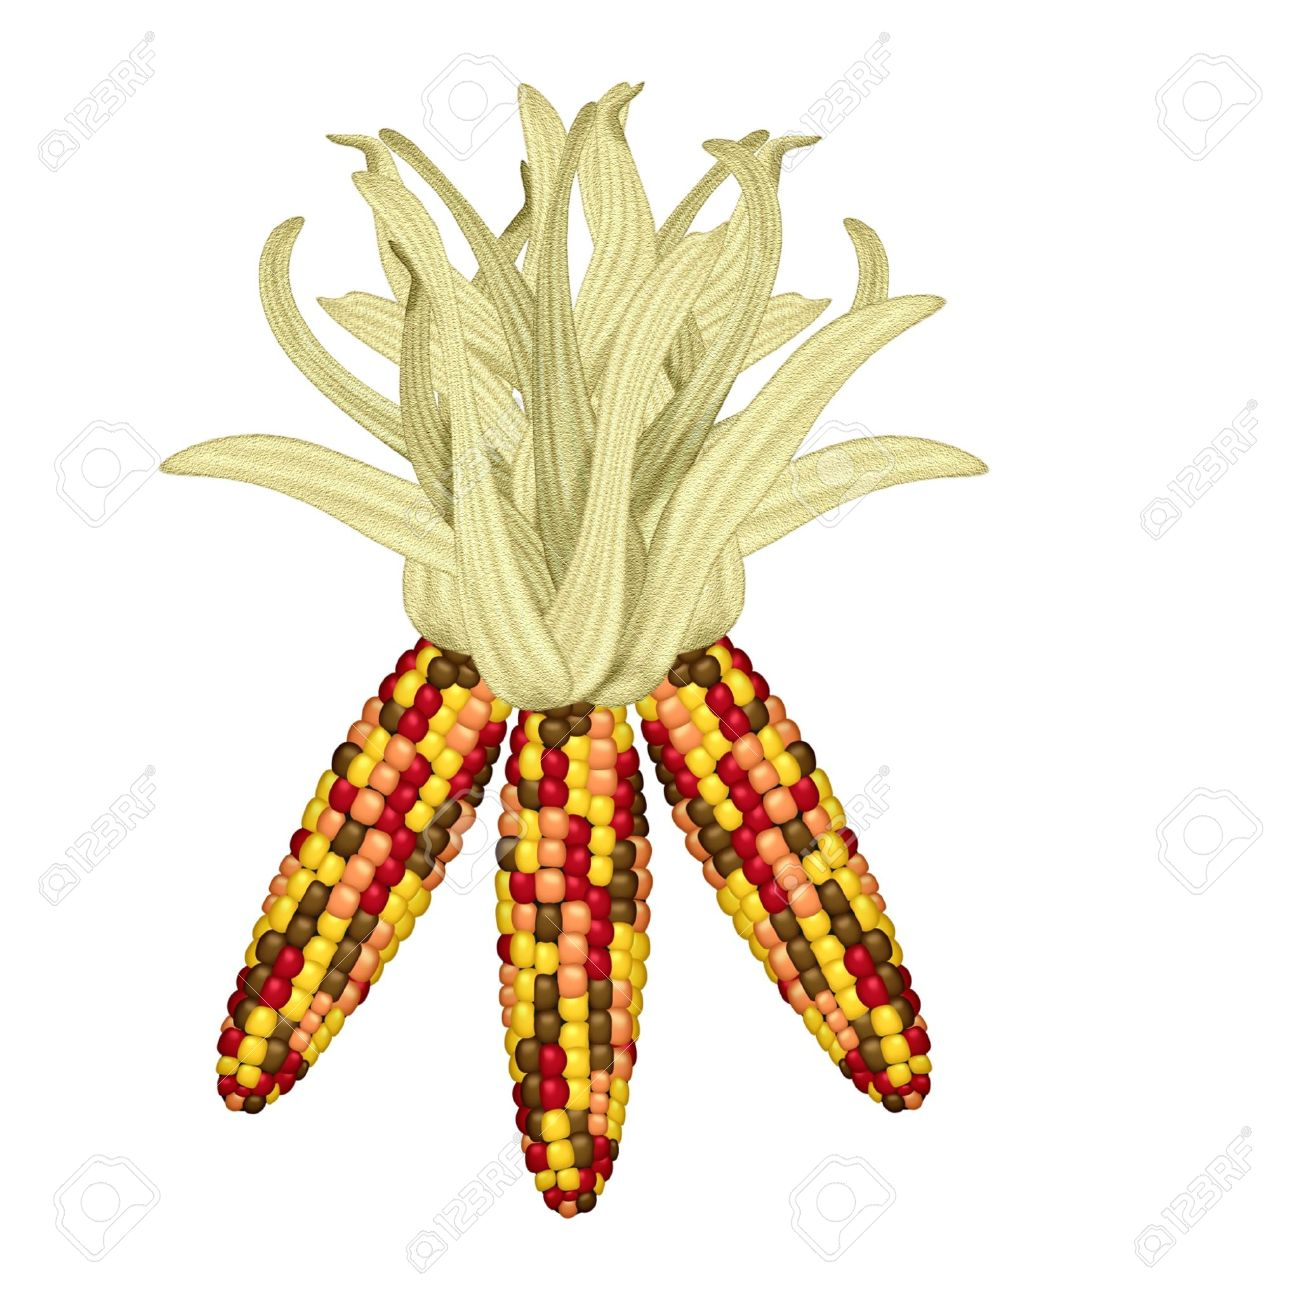 50 442 corn cliparts stock vector and royalty free corn illustrations rh 123rf com Corn Stalk Clip Art indian corn clipart black and white